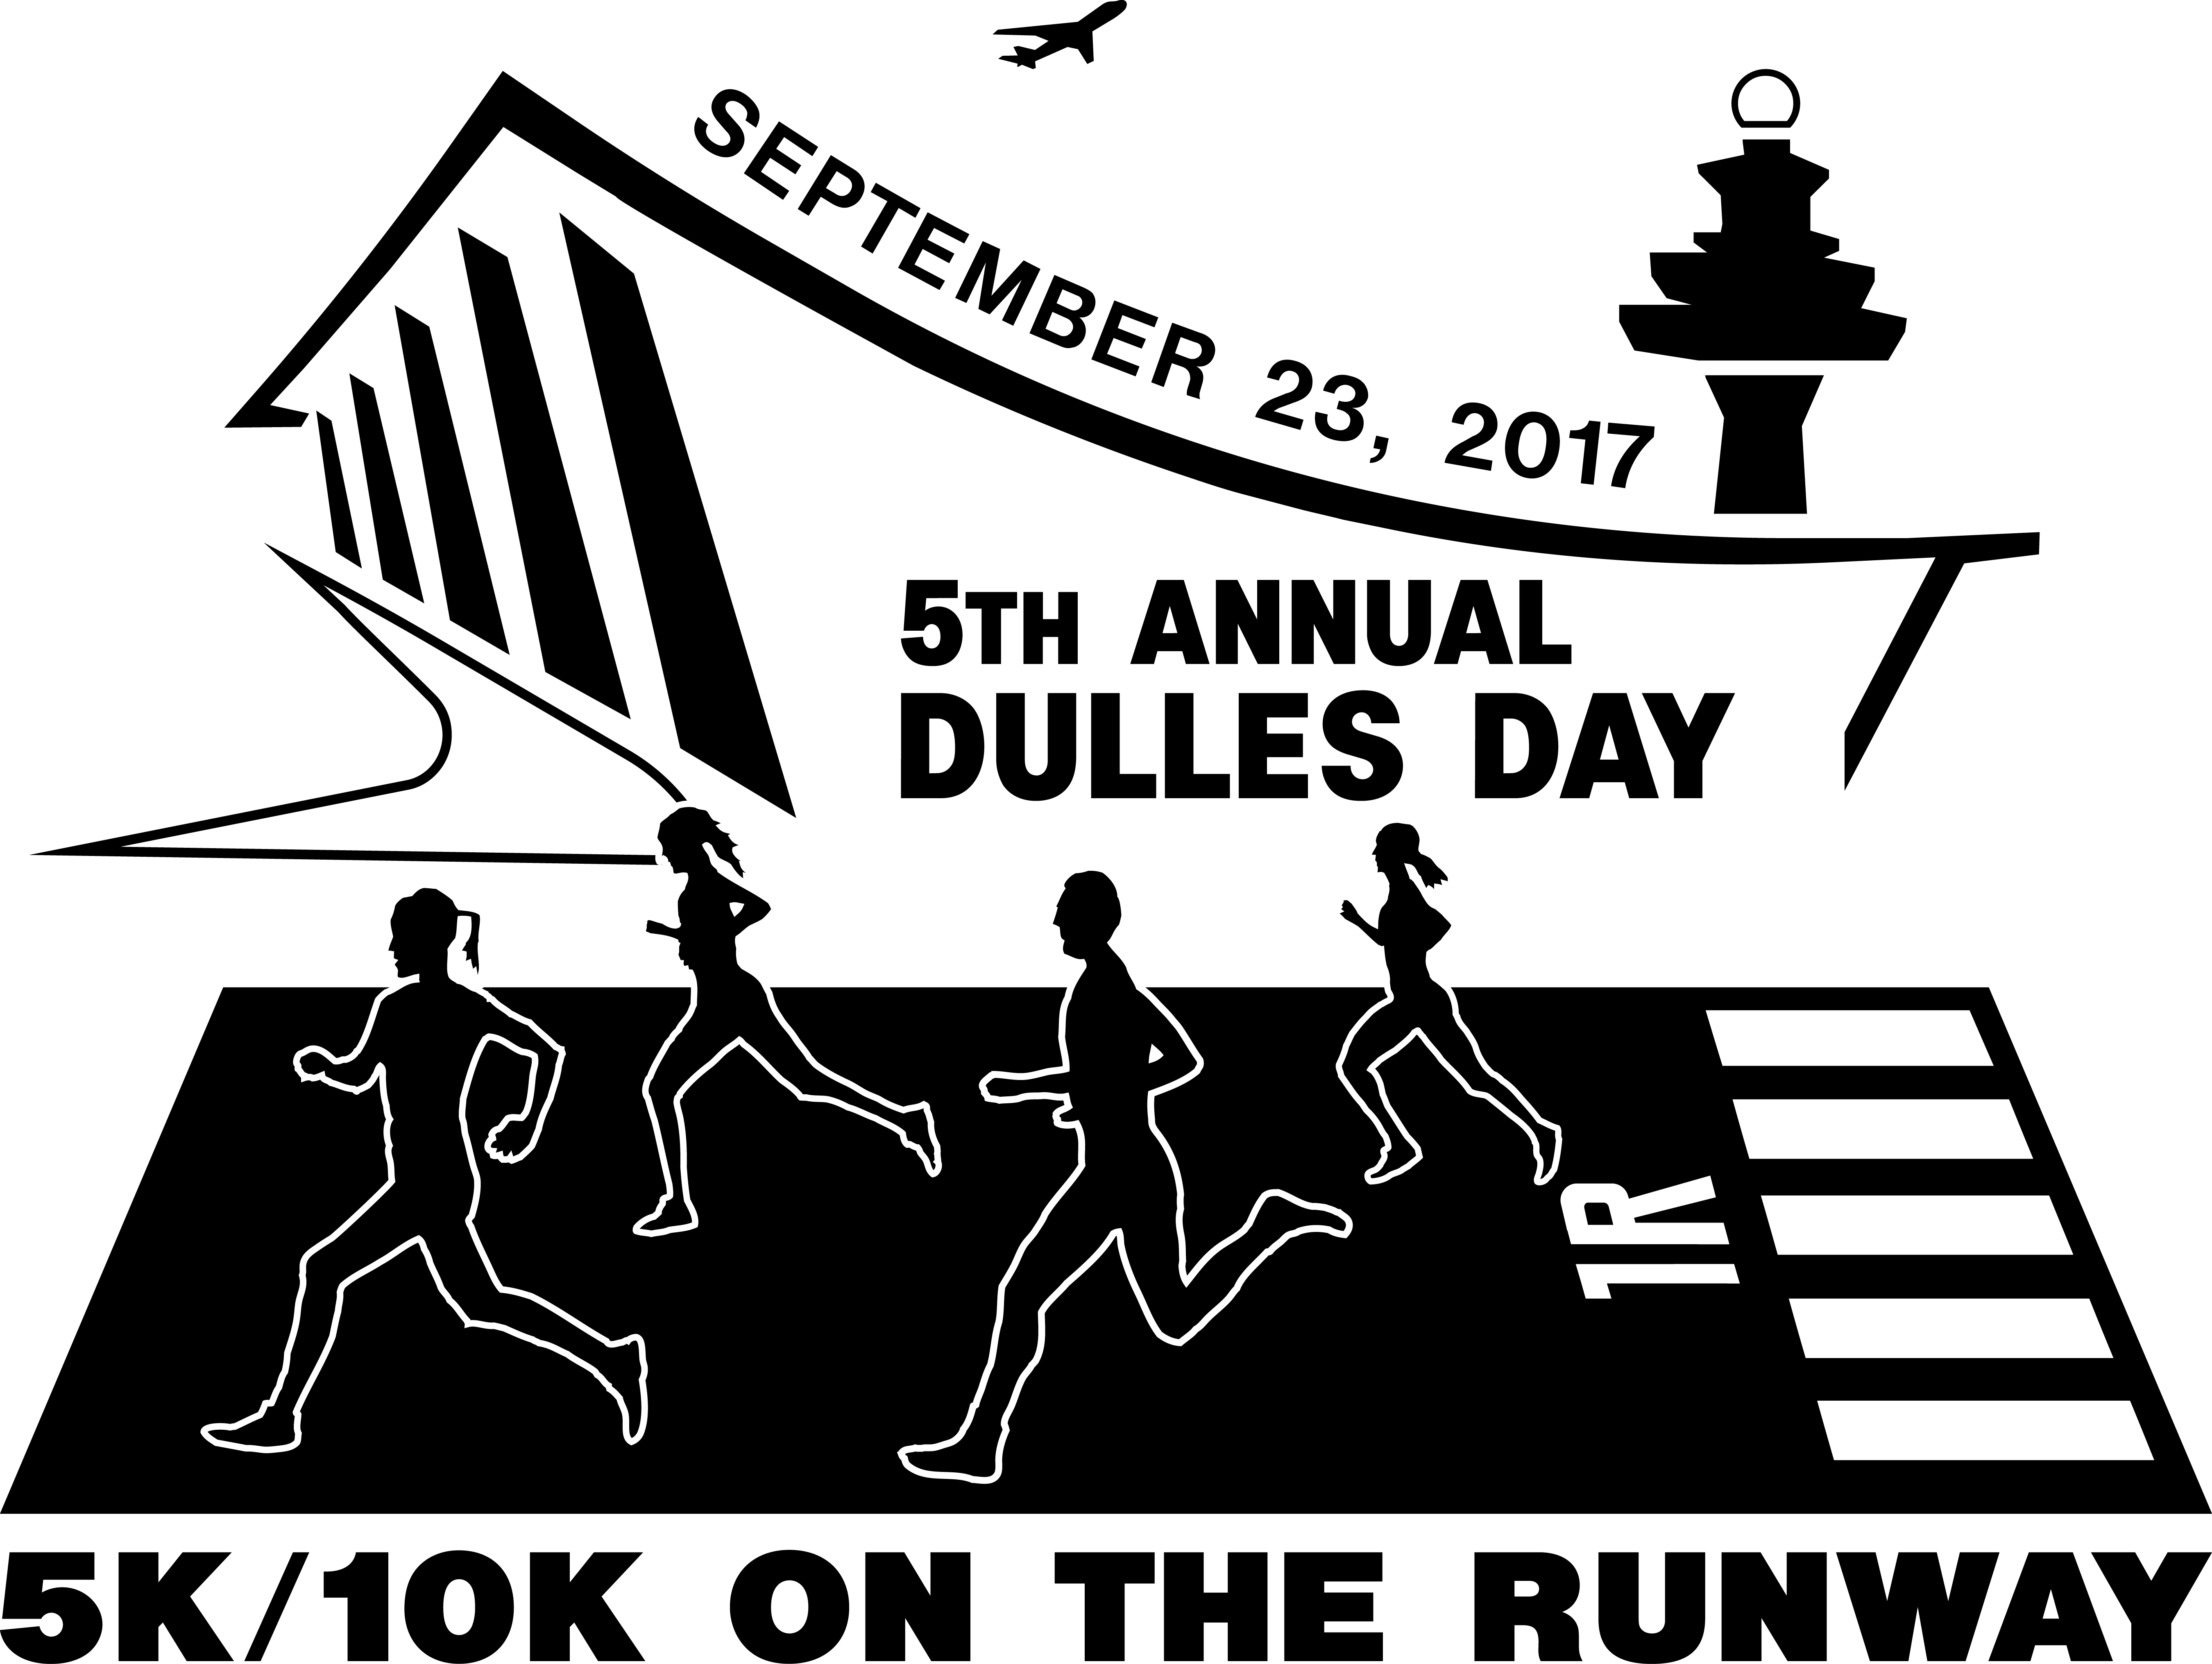 Register for the 2017 Dulles Day 5k/10k On the Runway